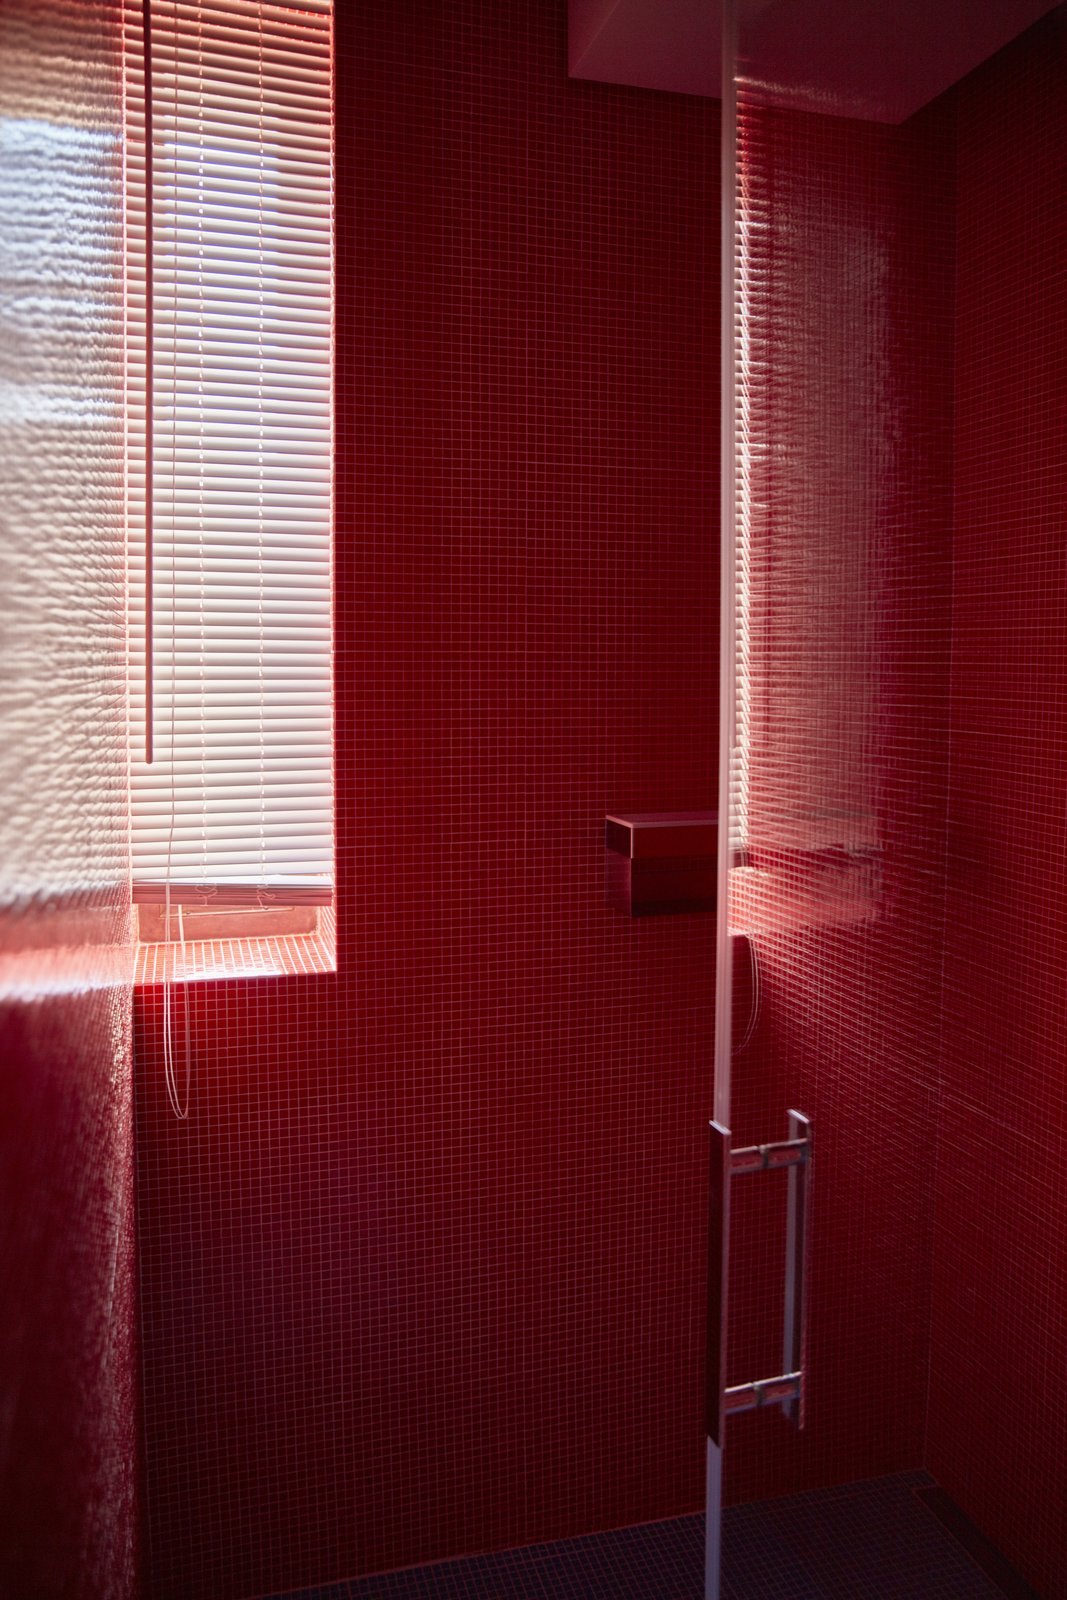 Bath, Glass Tile, and Corner The mosaic wall tiles are by Trend.  Best Bath Glass Tile Corner Photos from An Architect Unites Three Brutalist Villas He Designed on Sardinia in the 1970s